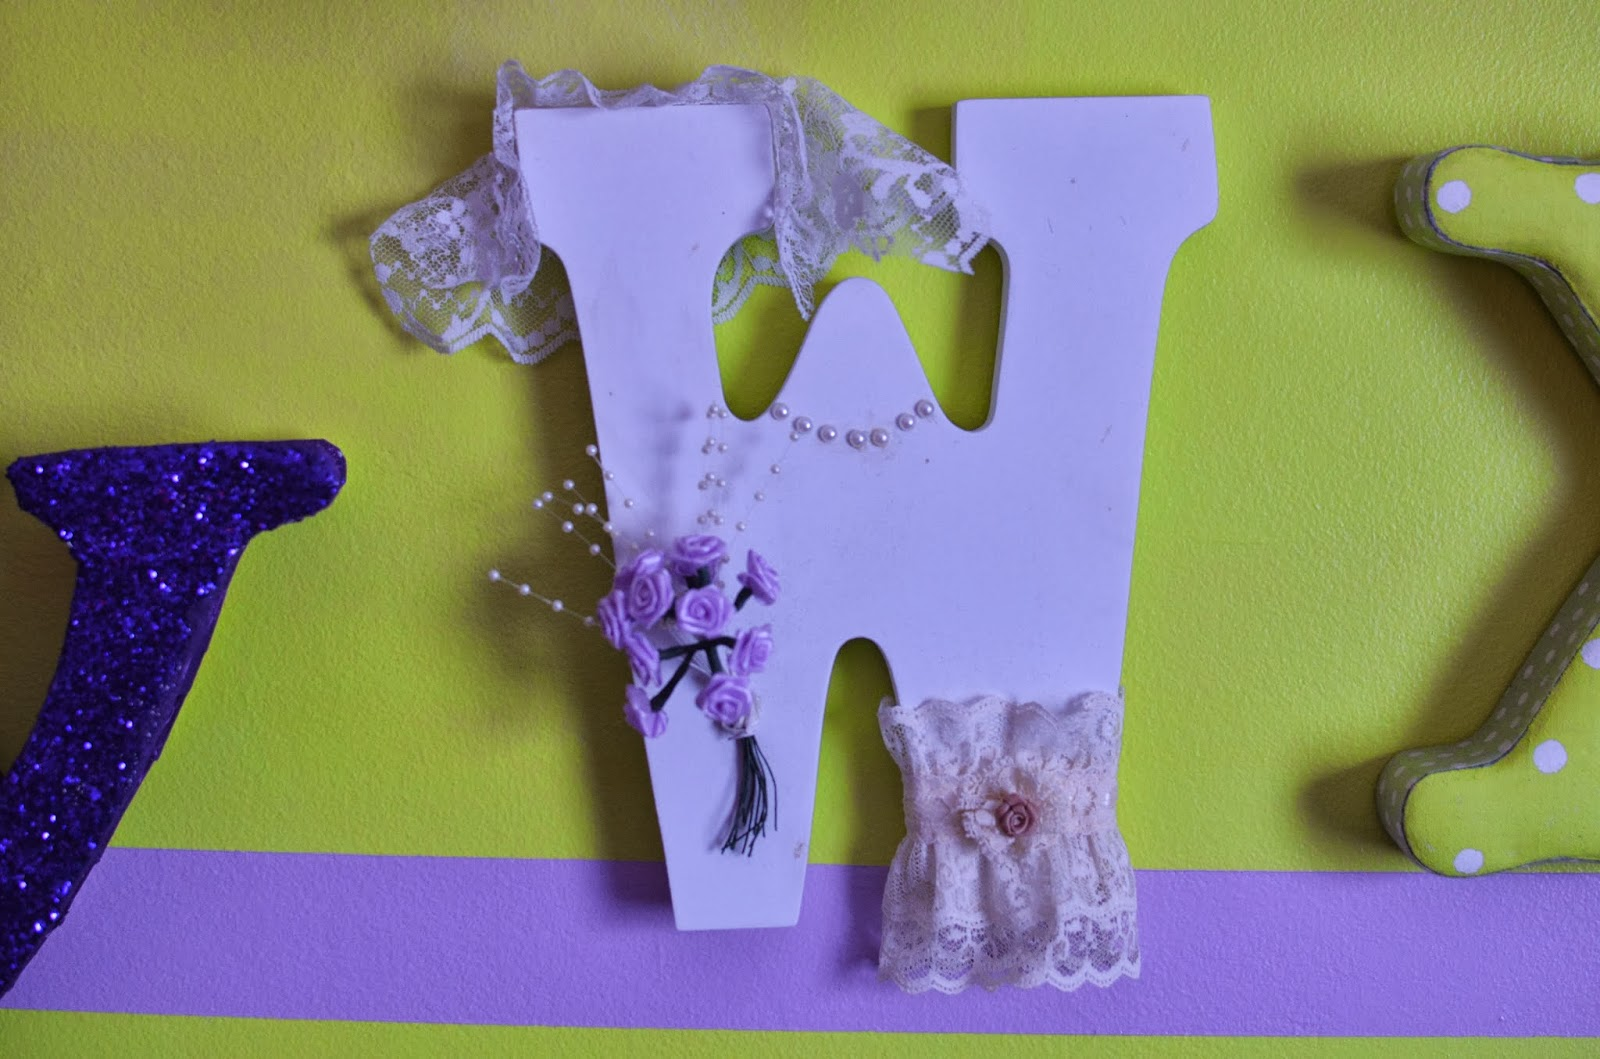 The Letter N In Purple Glitter I sealed the letter so thereThe Letter N In Purple